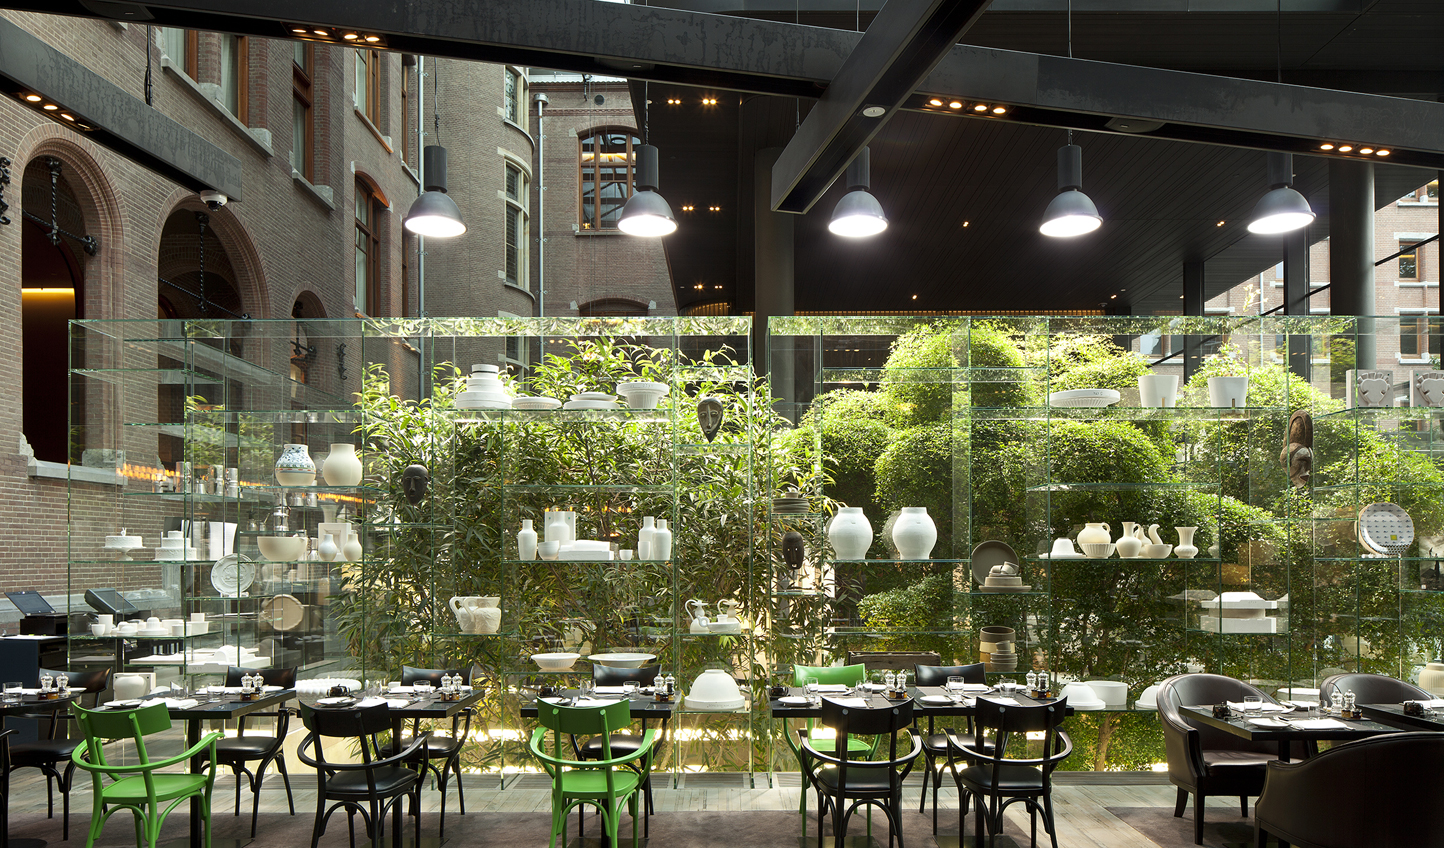 Lunch in a glass courtyard anyone? Yes, please.